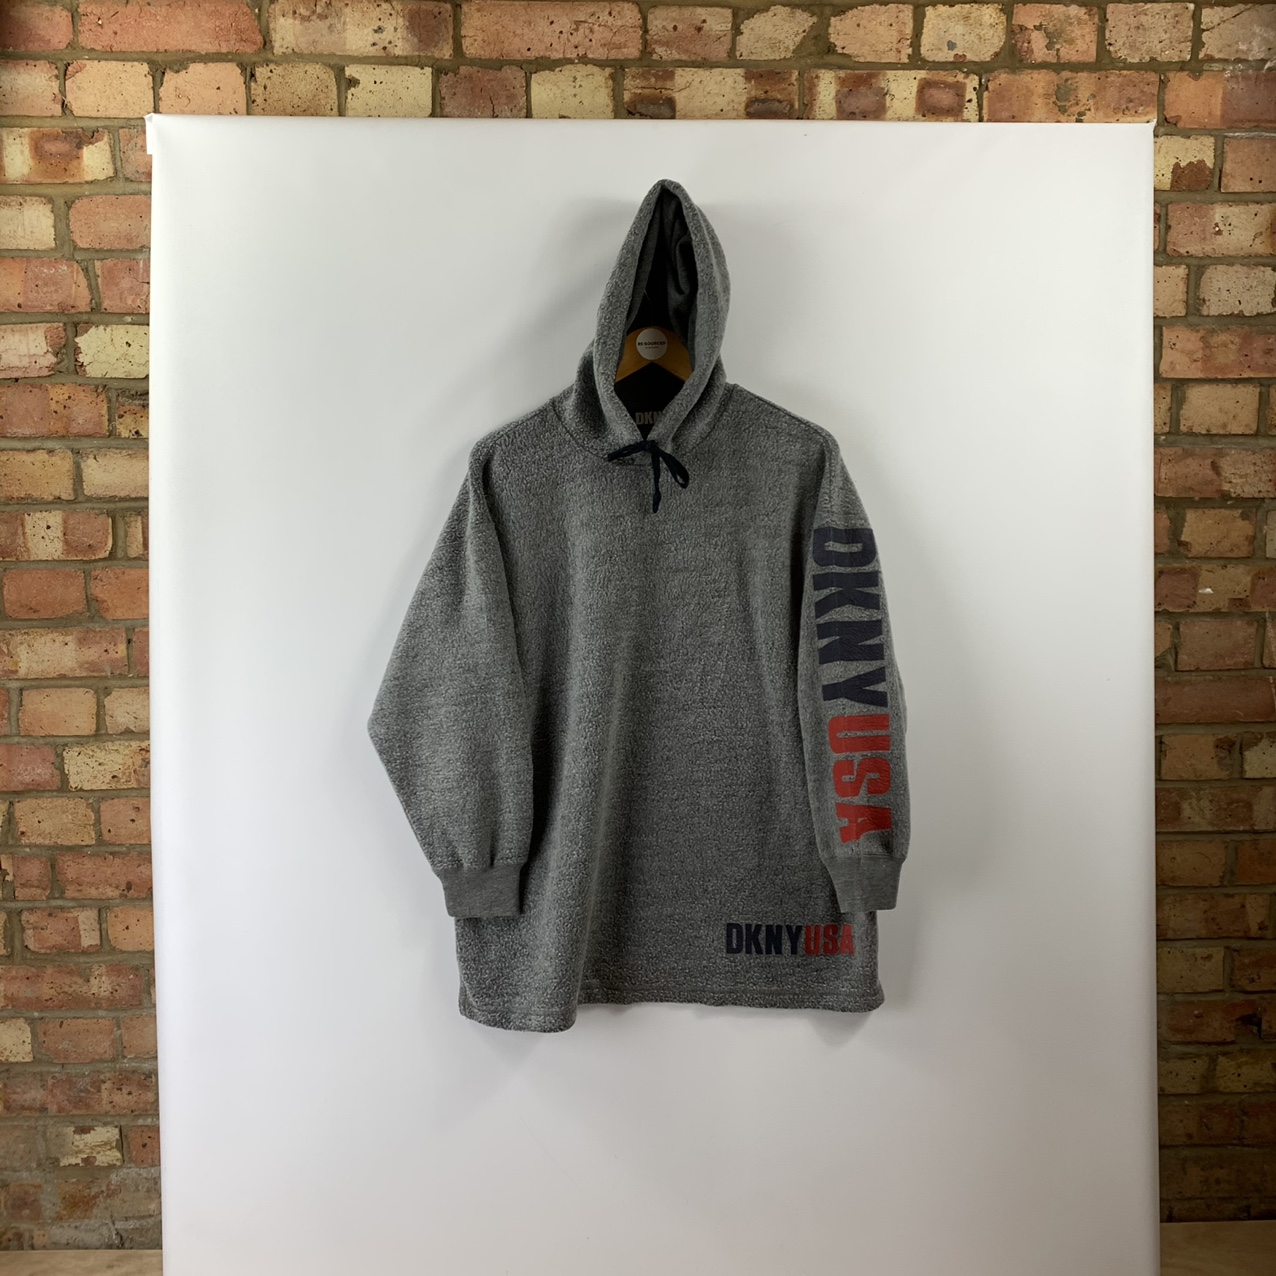 Product Image 1 - Vintage DKNY hooded fleece with